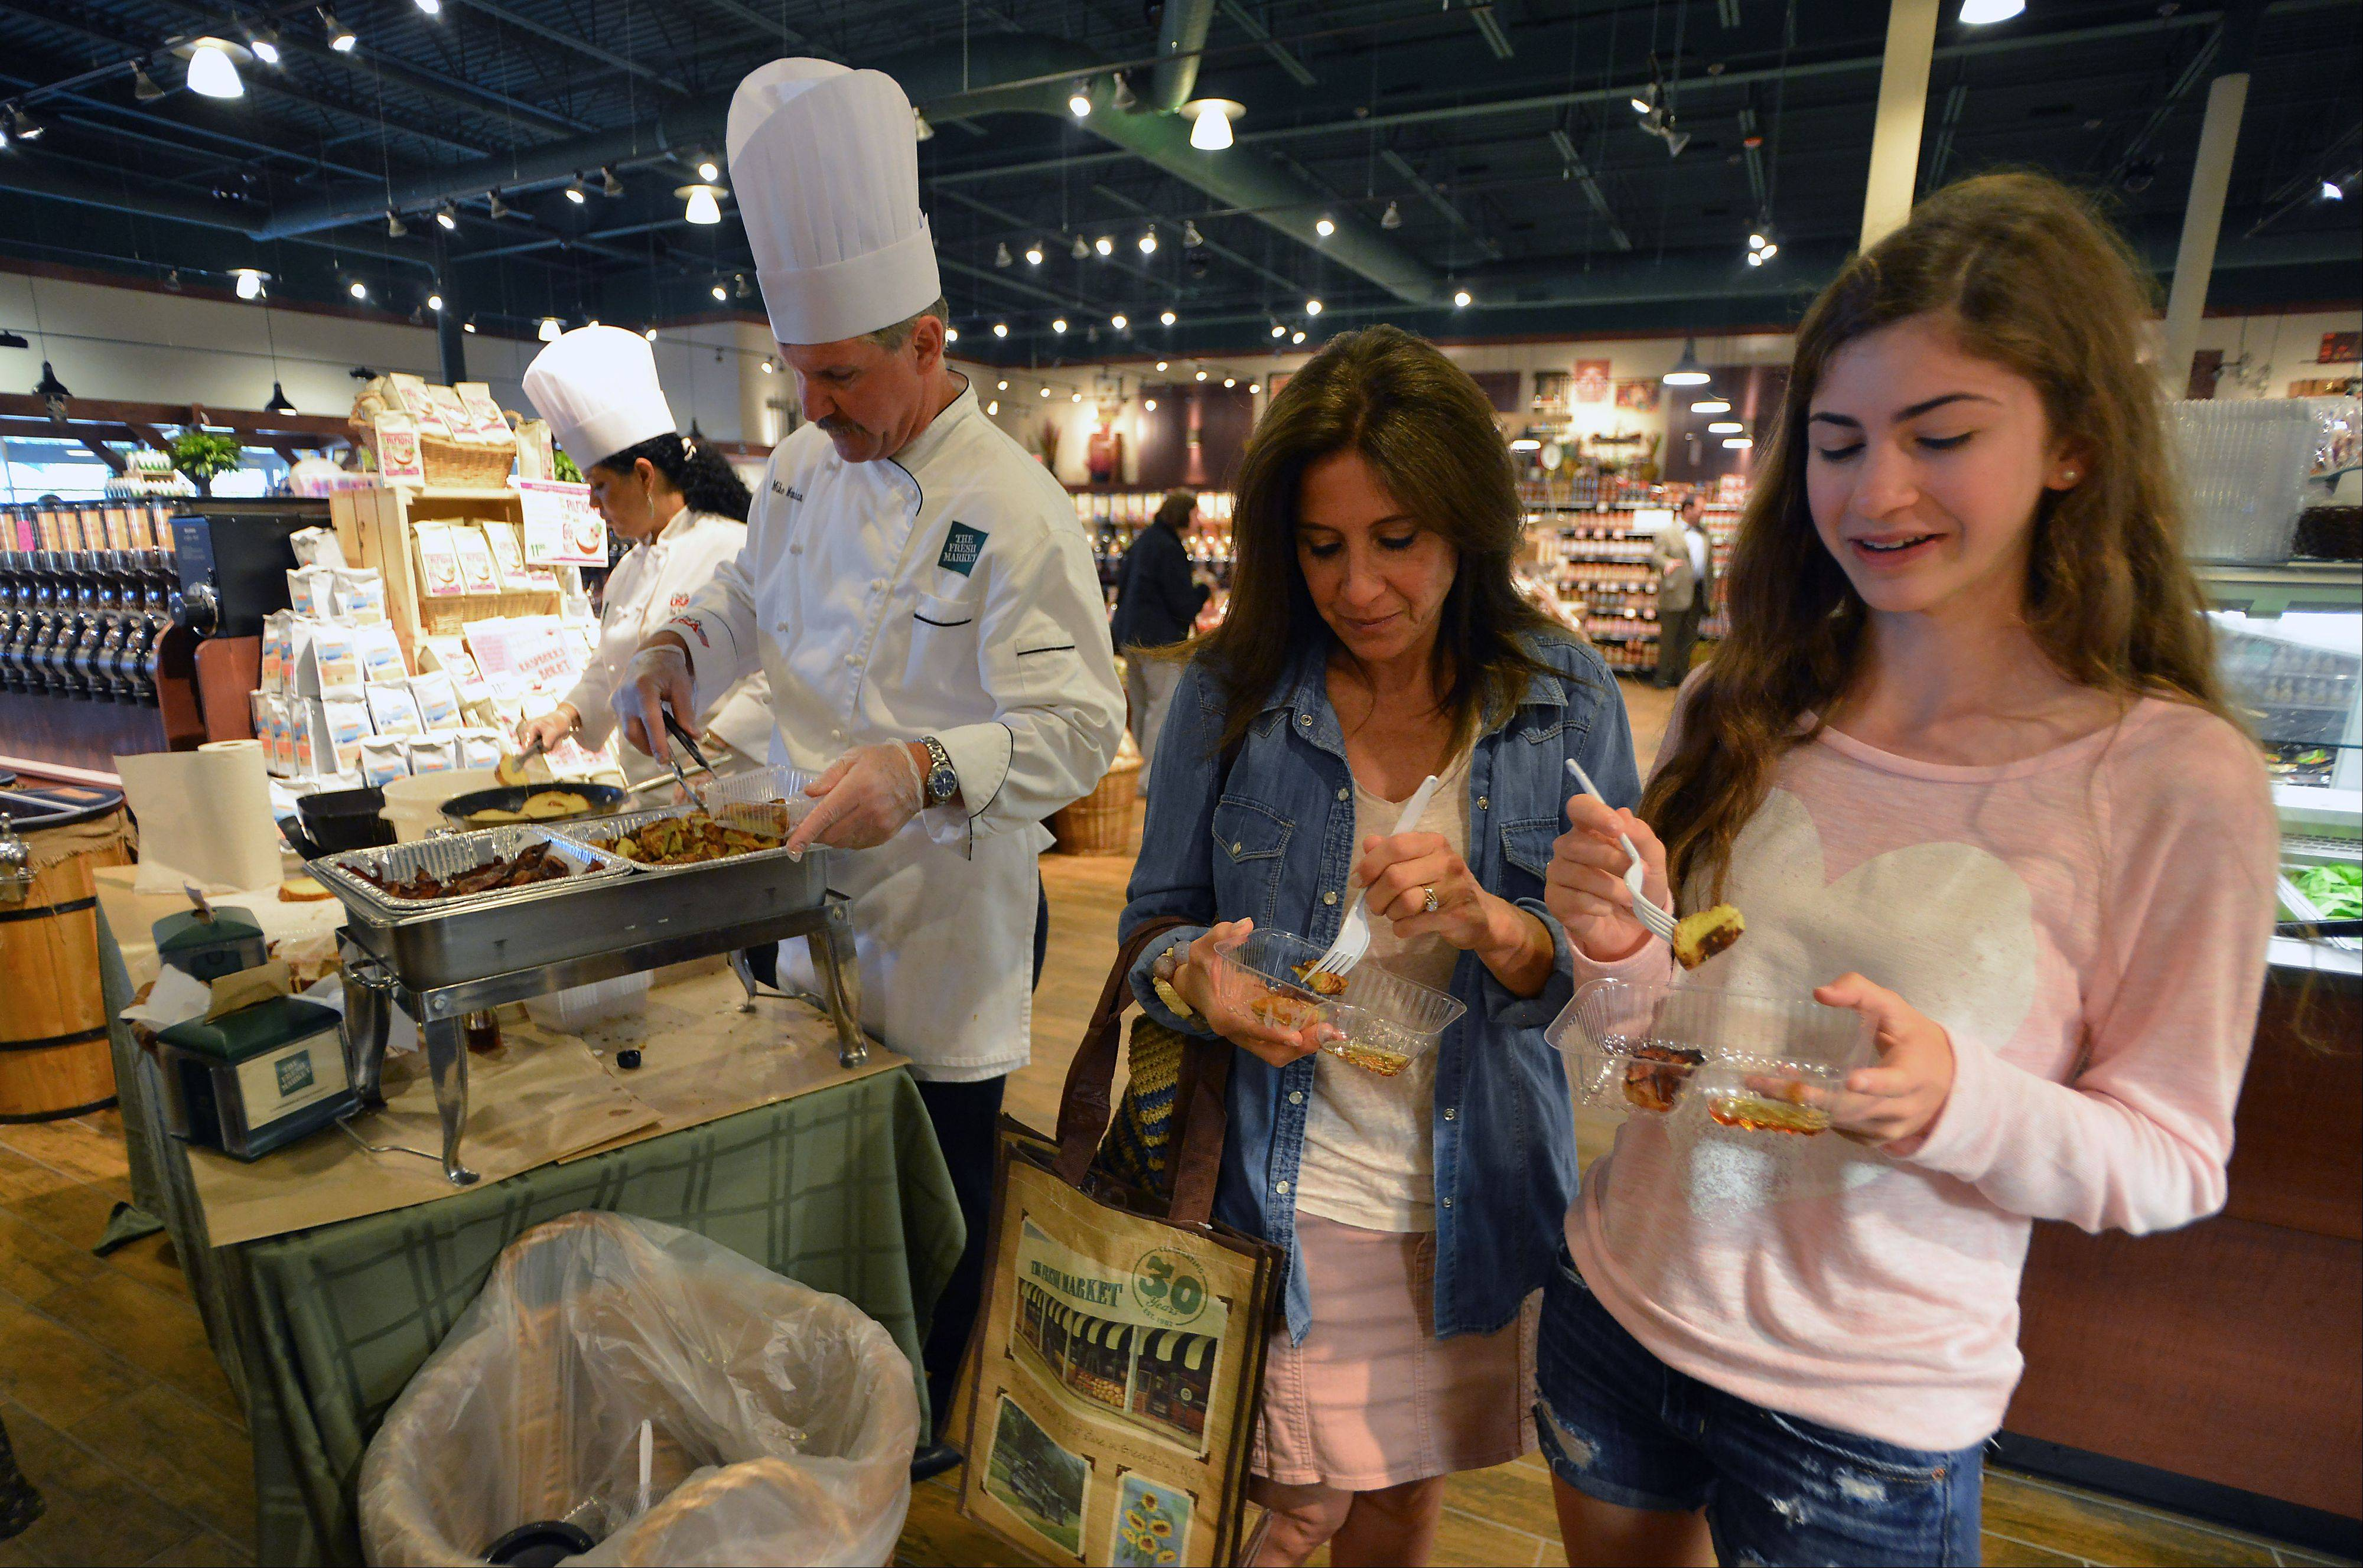 Lori Abrams and her daughter Talia, 16, of Buffalo Grove, prepare to taste food samples from chefs Mike Monahan and Desiree Price at the grand opening of The Fresh Market in Lincolnshire on Wednesday.